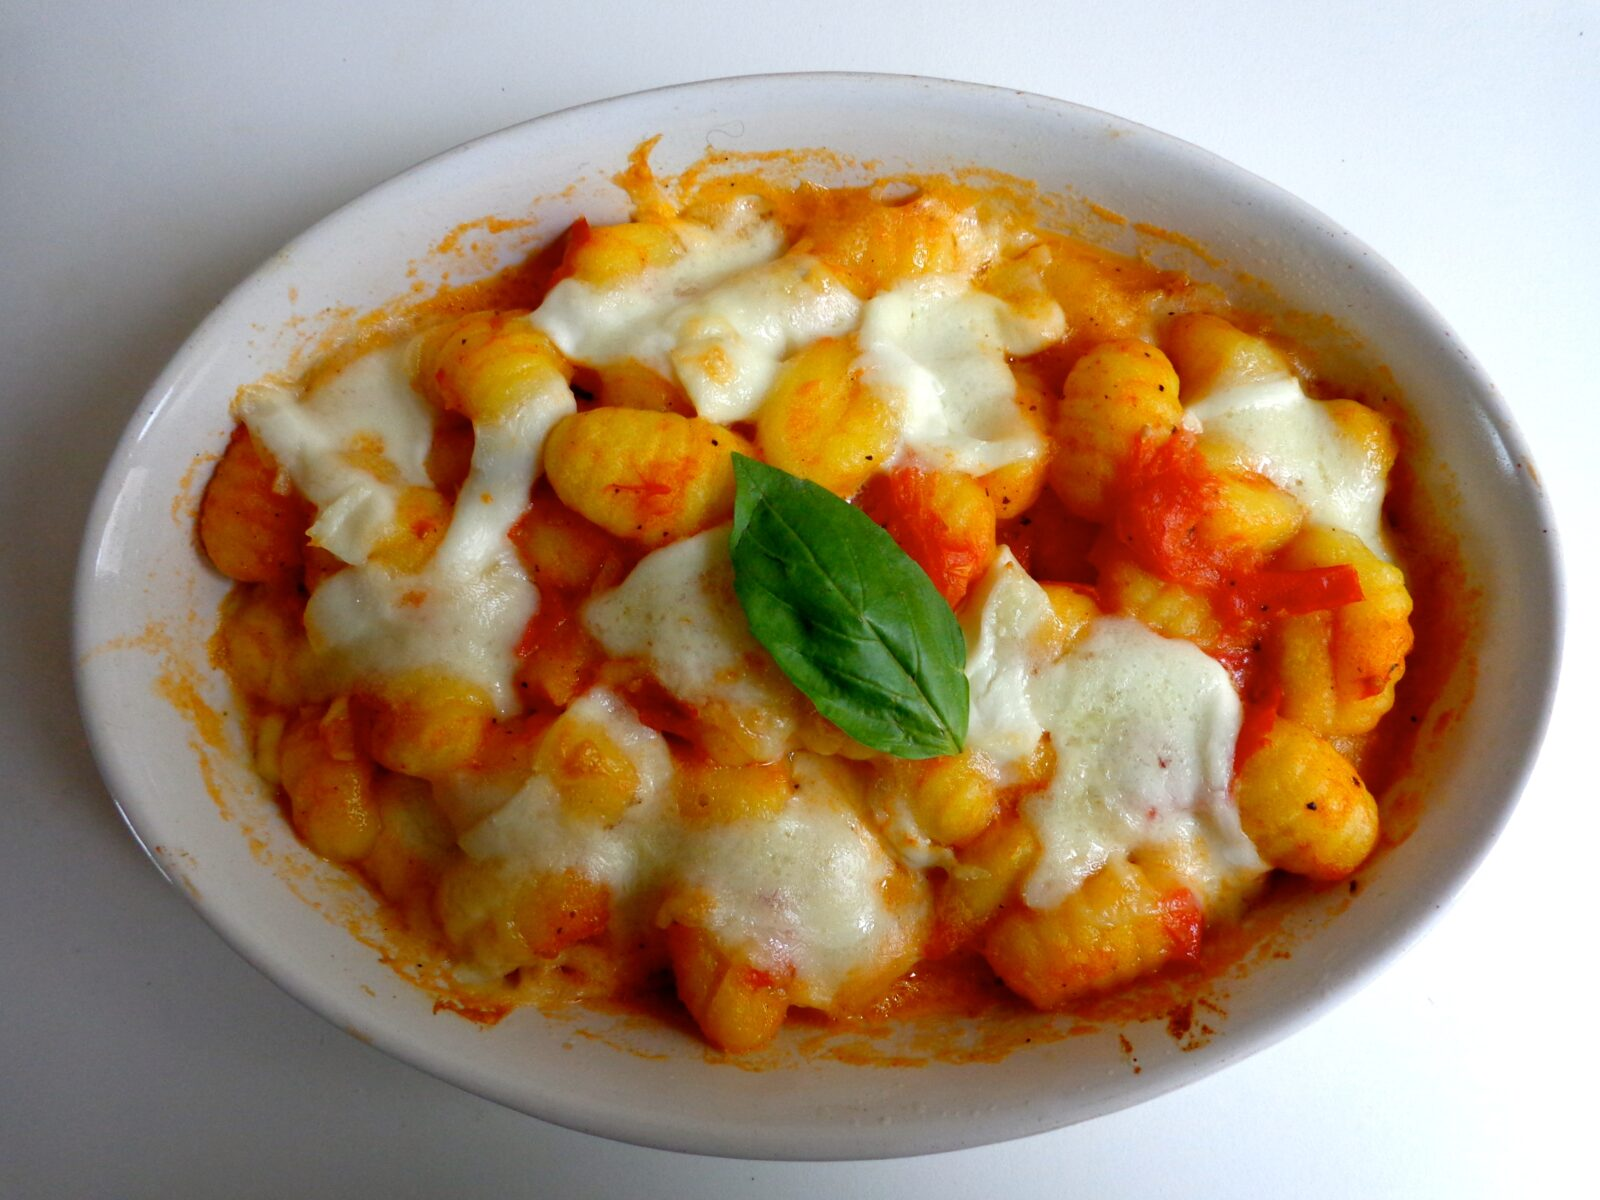 baked gnocchi with rustic tomato sauce the everyday french chef. Black Bedroom Furniture Sets. Home Design Ideas